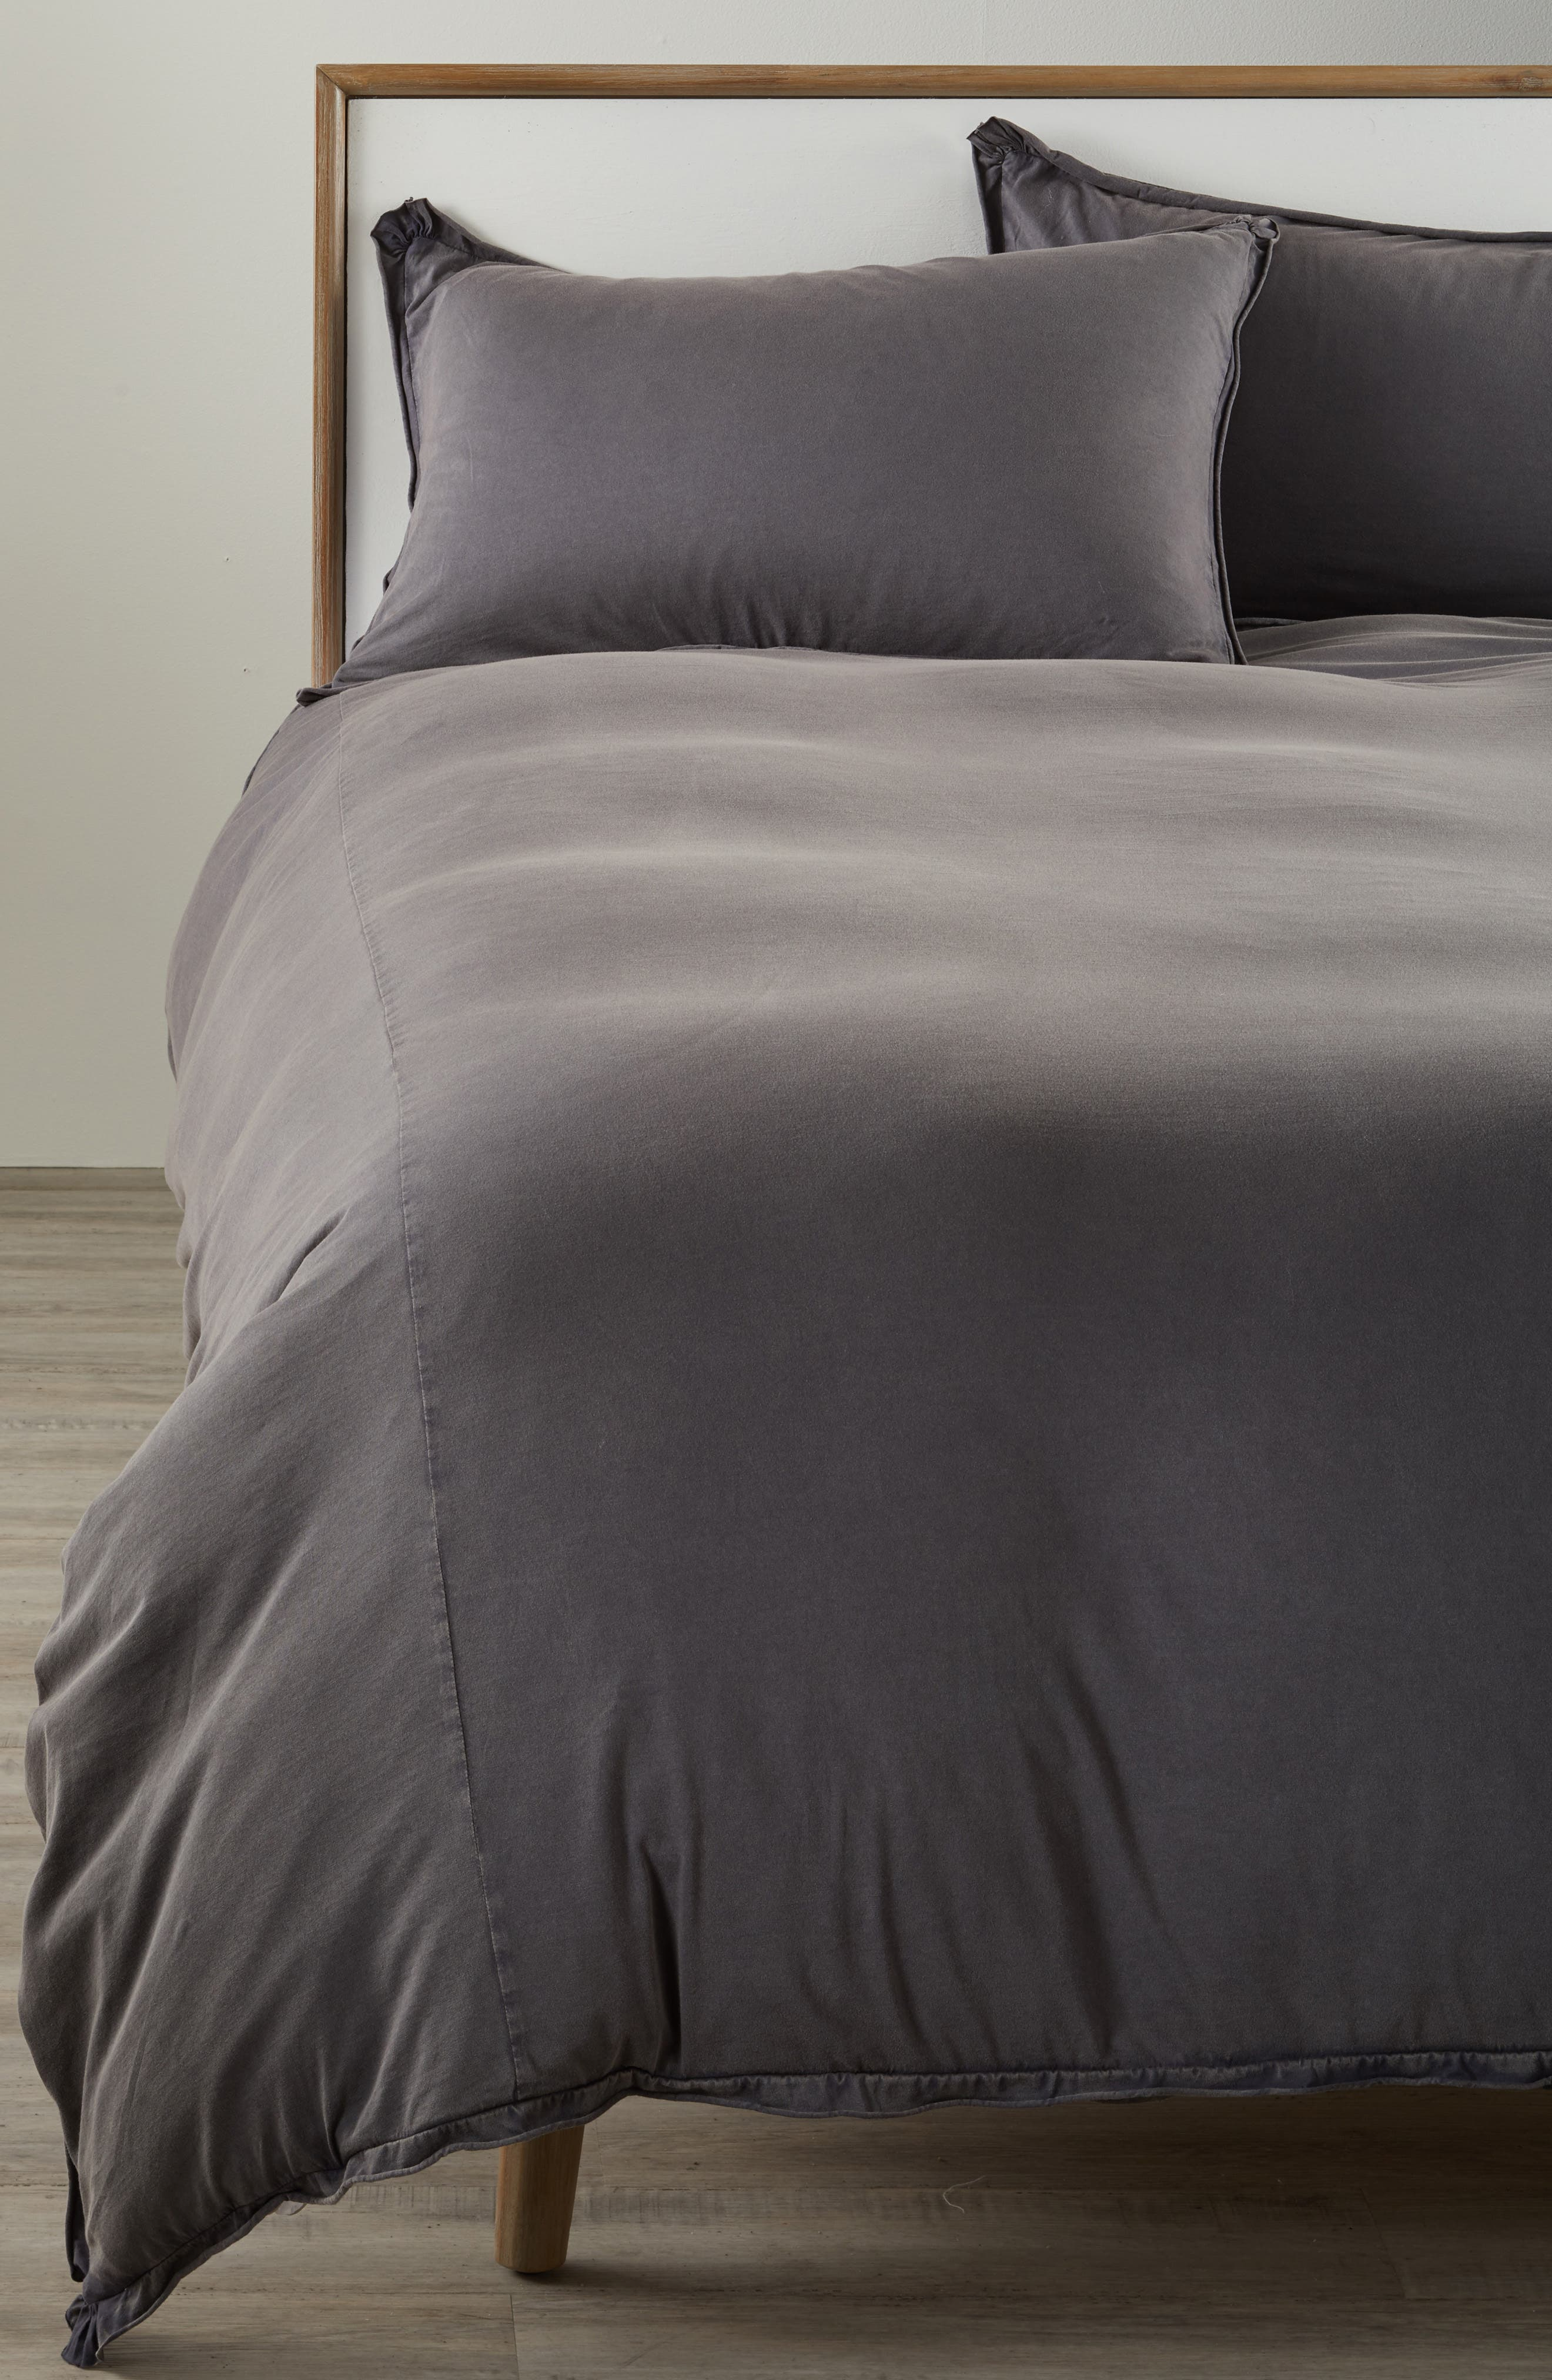 Stonewash Jersey Duvet Cover,                             Alternate thumbnail 2, color,                             Grey Onyx